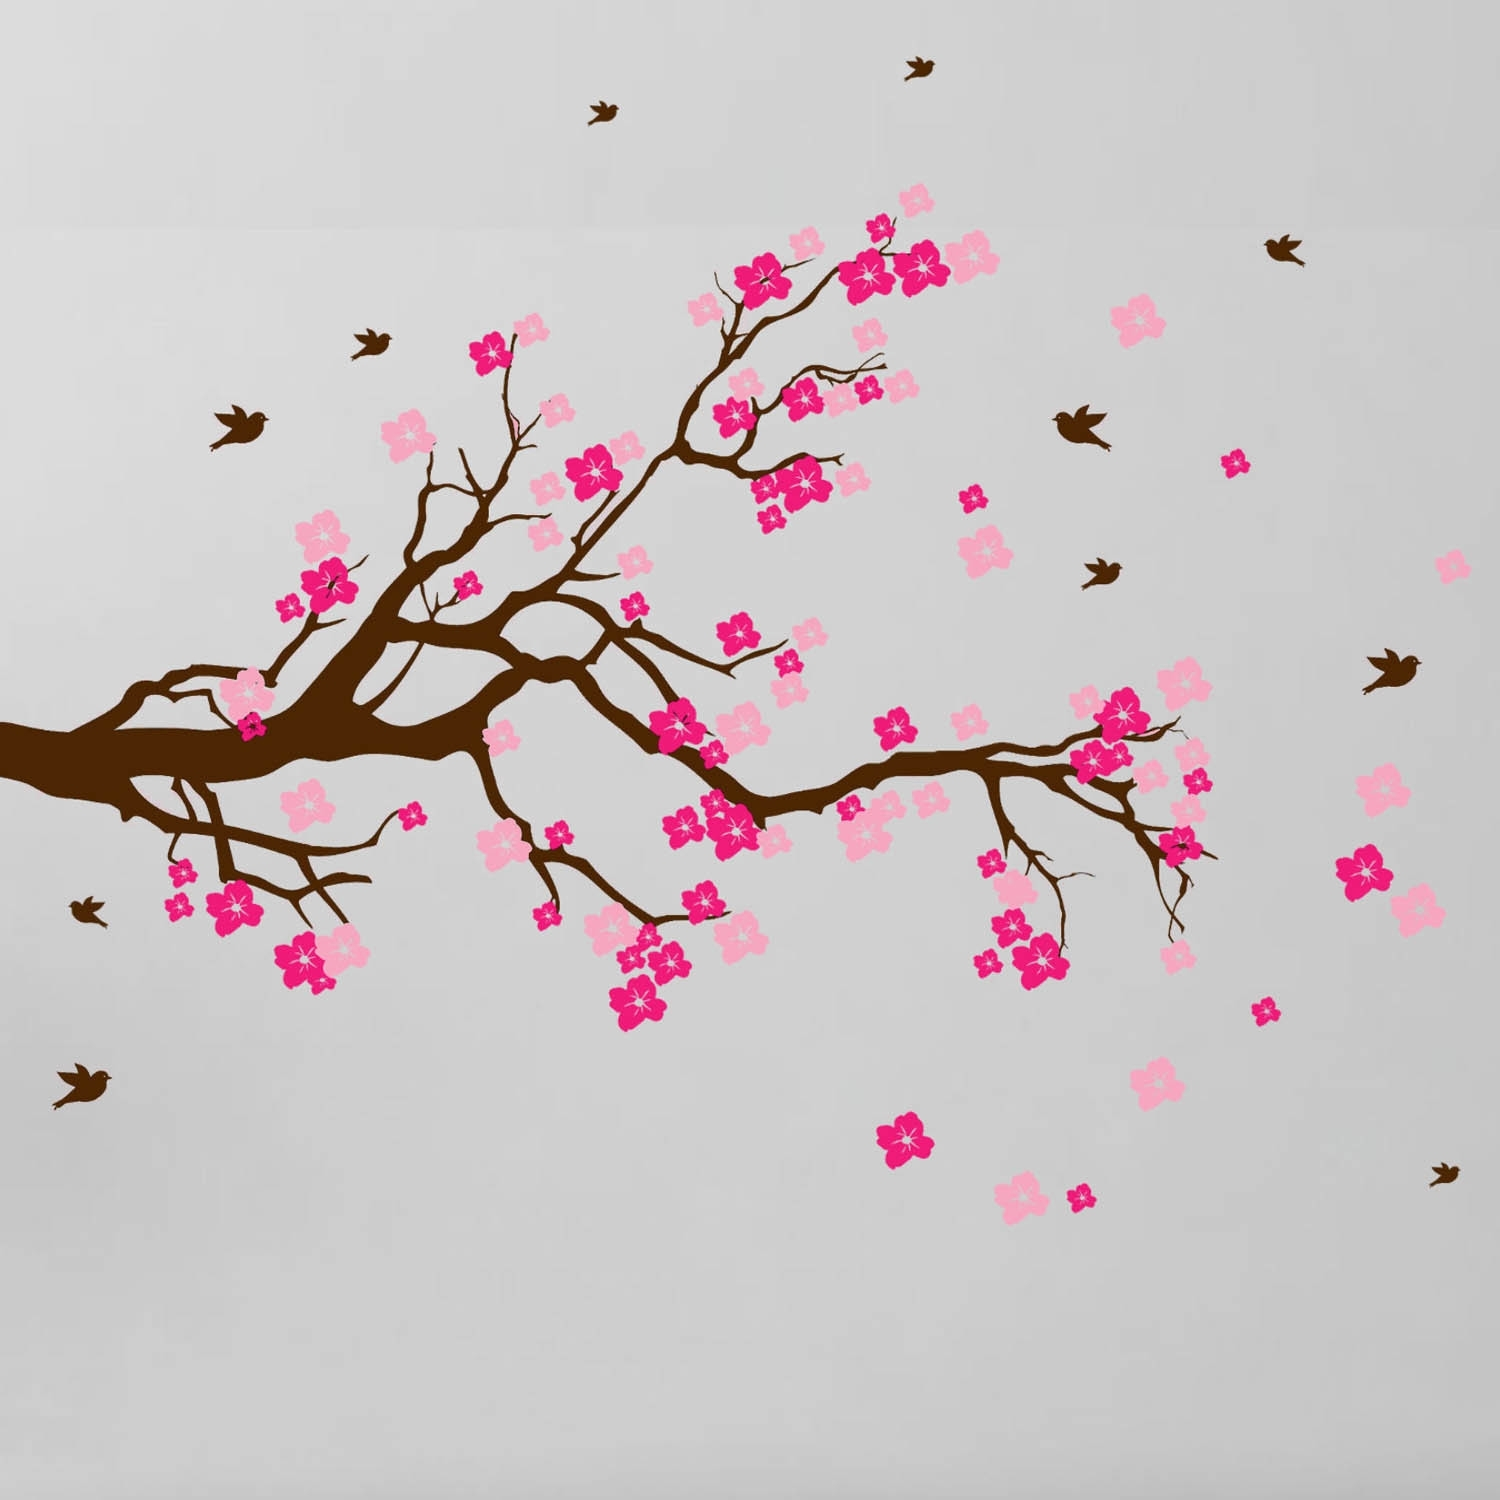 Shop Cherry Blossom Branch With Birds Vinyl Wall Art Decal – Free For Most Recent Cherry Blossom Wall Art (View 20 of 20)